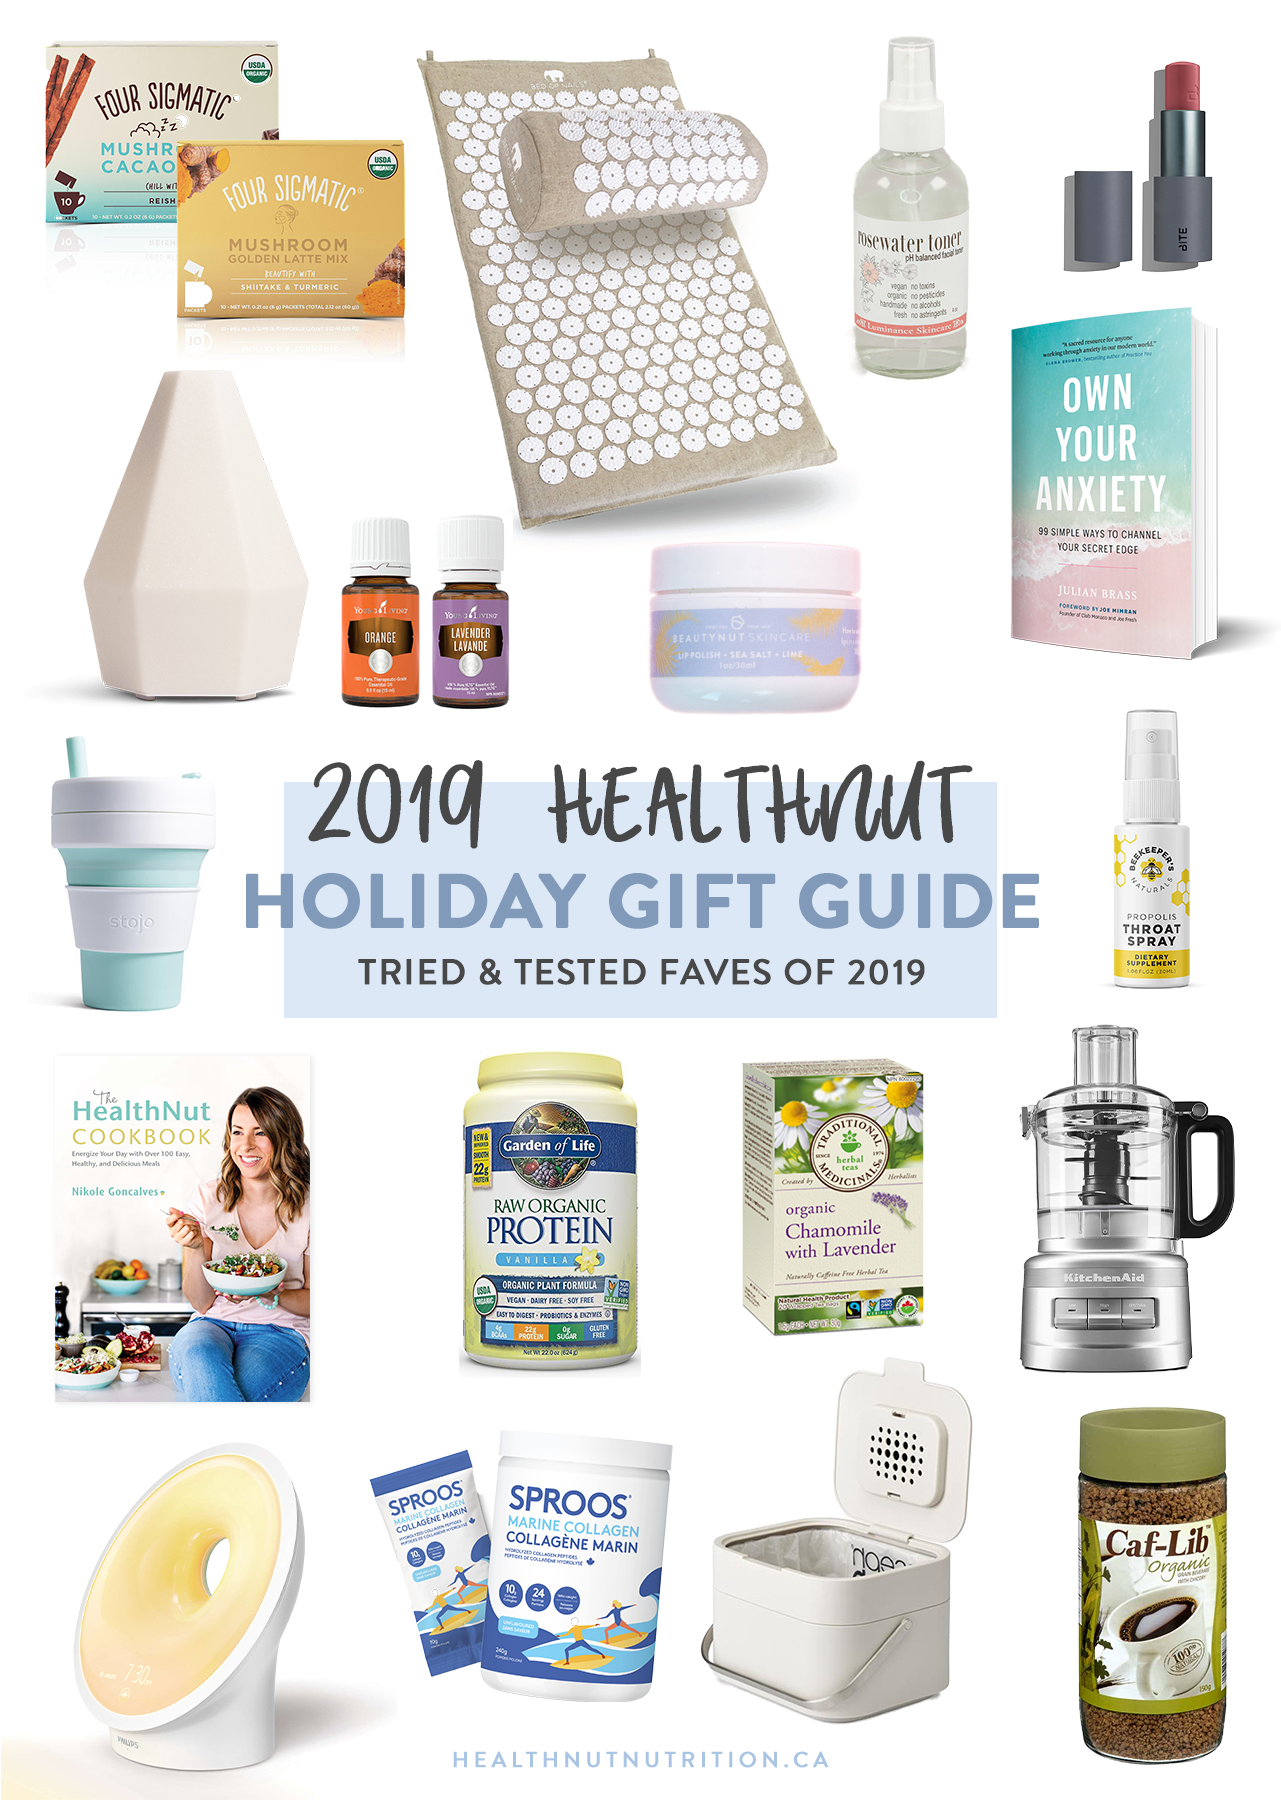 I'm going to make your Christmas shopping easy and fun with affordable gifts under $25, ideas for those friends and family members who already have everything, and unique gift ideas I bet you've never thought of. Some of these items will not surprise you because you've probably heard me raving about them before… but some of these ideas are new products that I just recently fell in love with, and I know you're going to love as well. This is quite an extensive list, so I've broken it up into categories to make things easier!